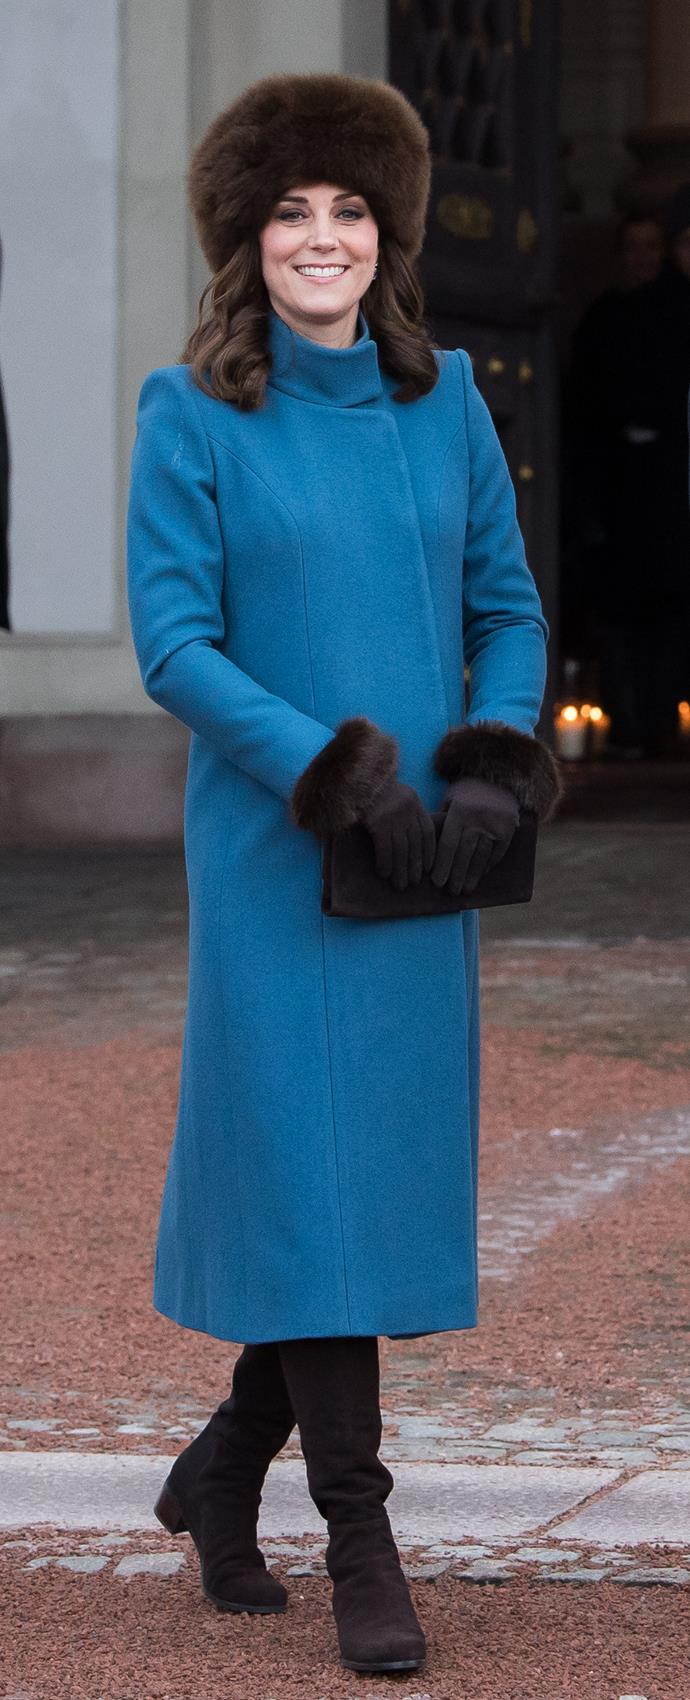 Kate wrapped up warm in this Catherine Walker coat during a trip to Oslo in 2018 - and if you look closely you'll *just* catch a glimpse of her burgeoning baby bump. She was pregnant with Prince Louis at the time.